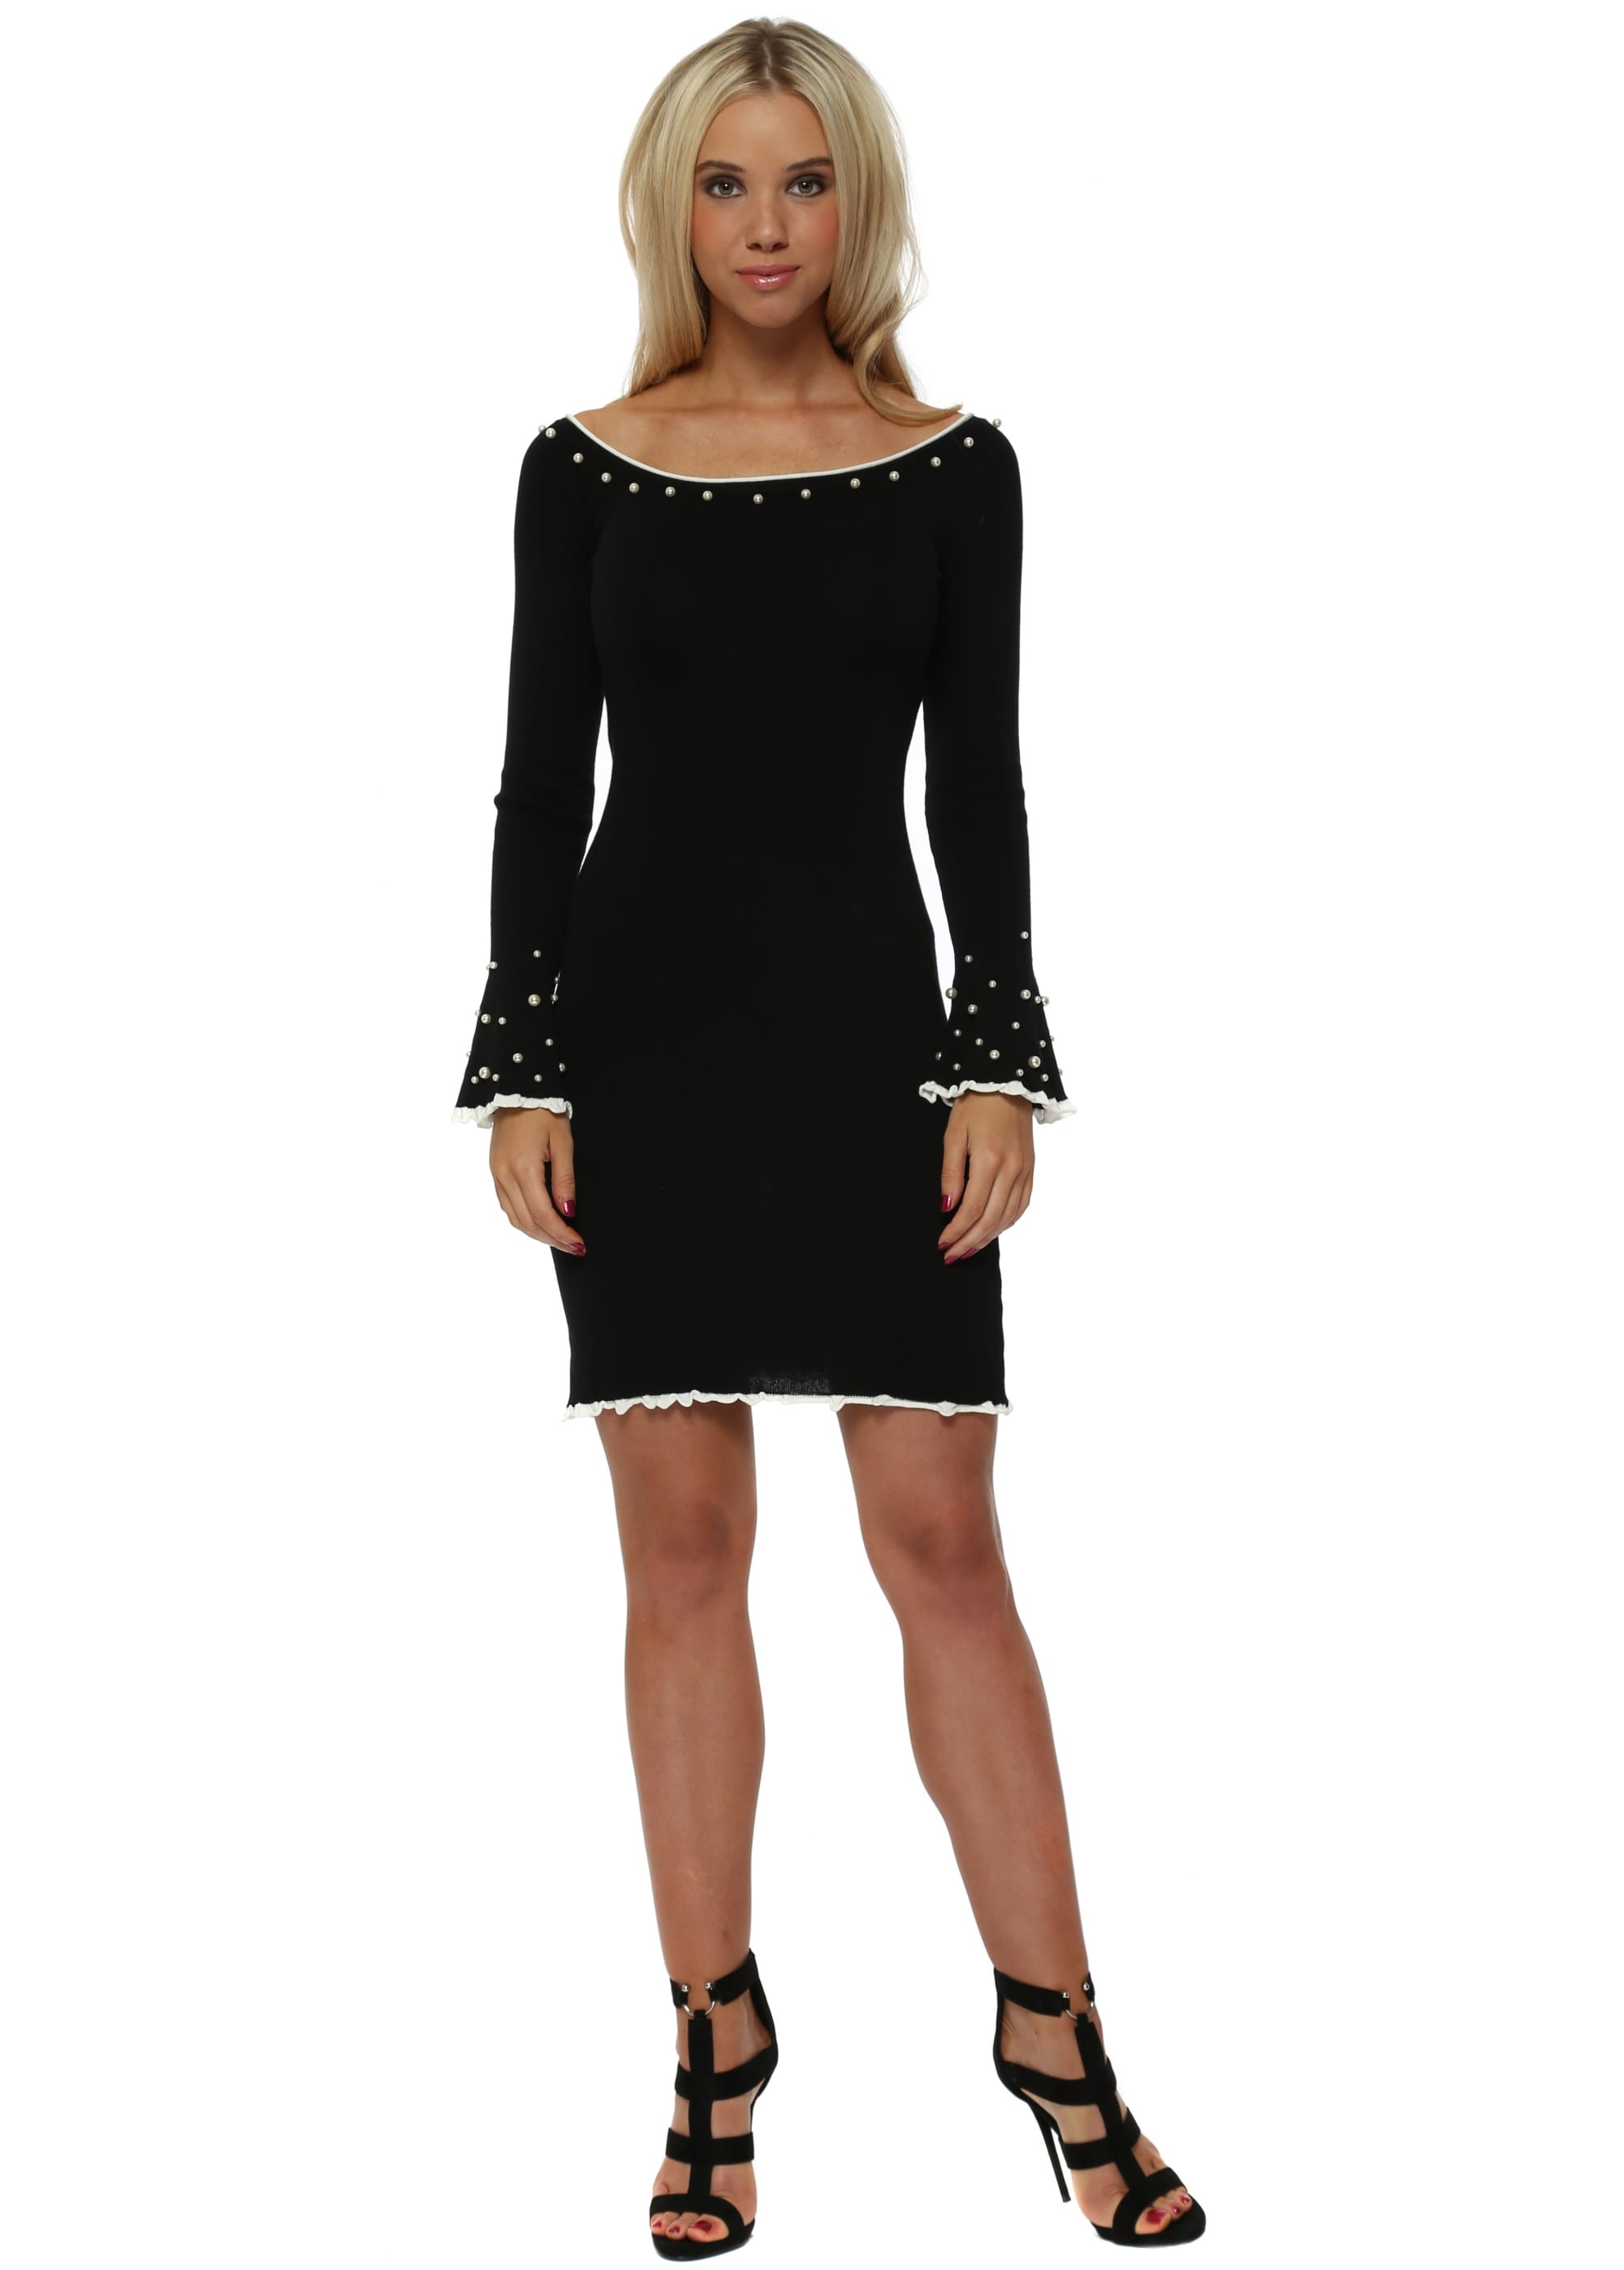 May By Shining Star Black Jumper Dress With Pearl Cuffs